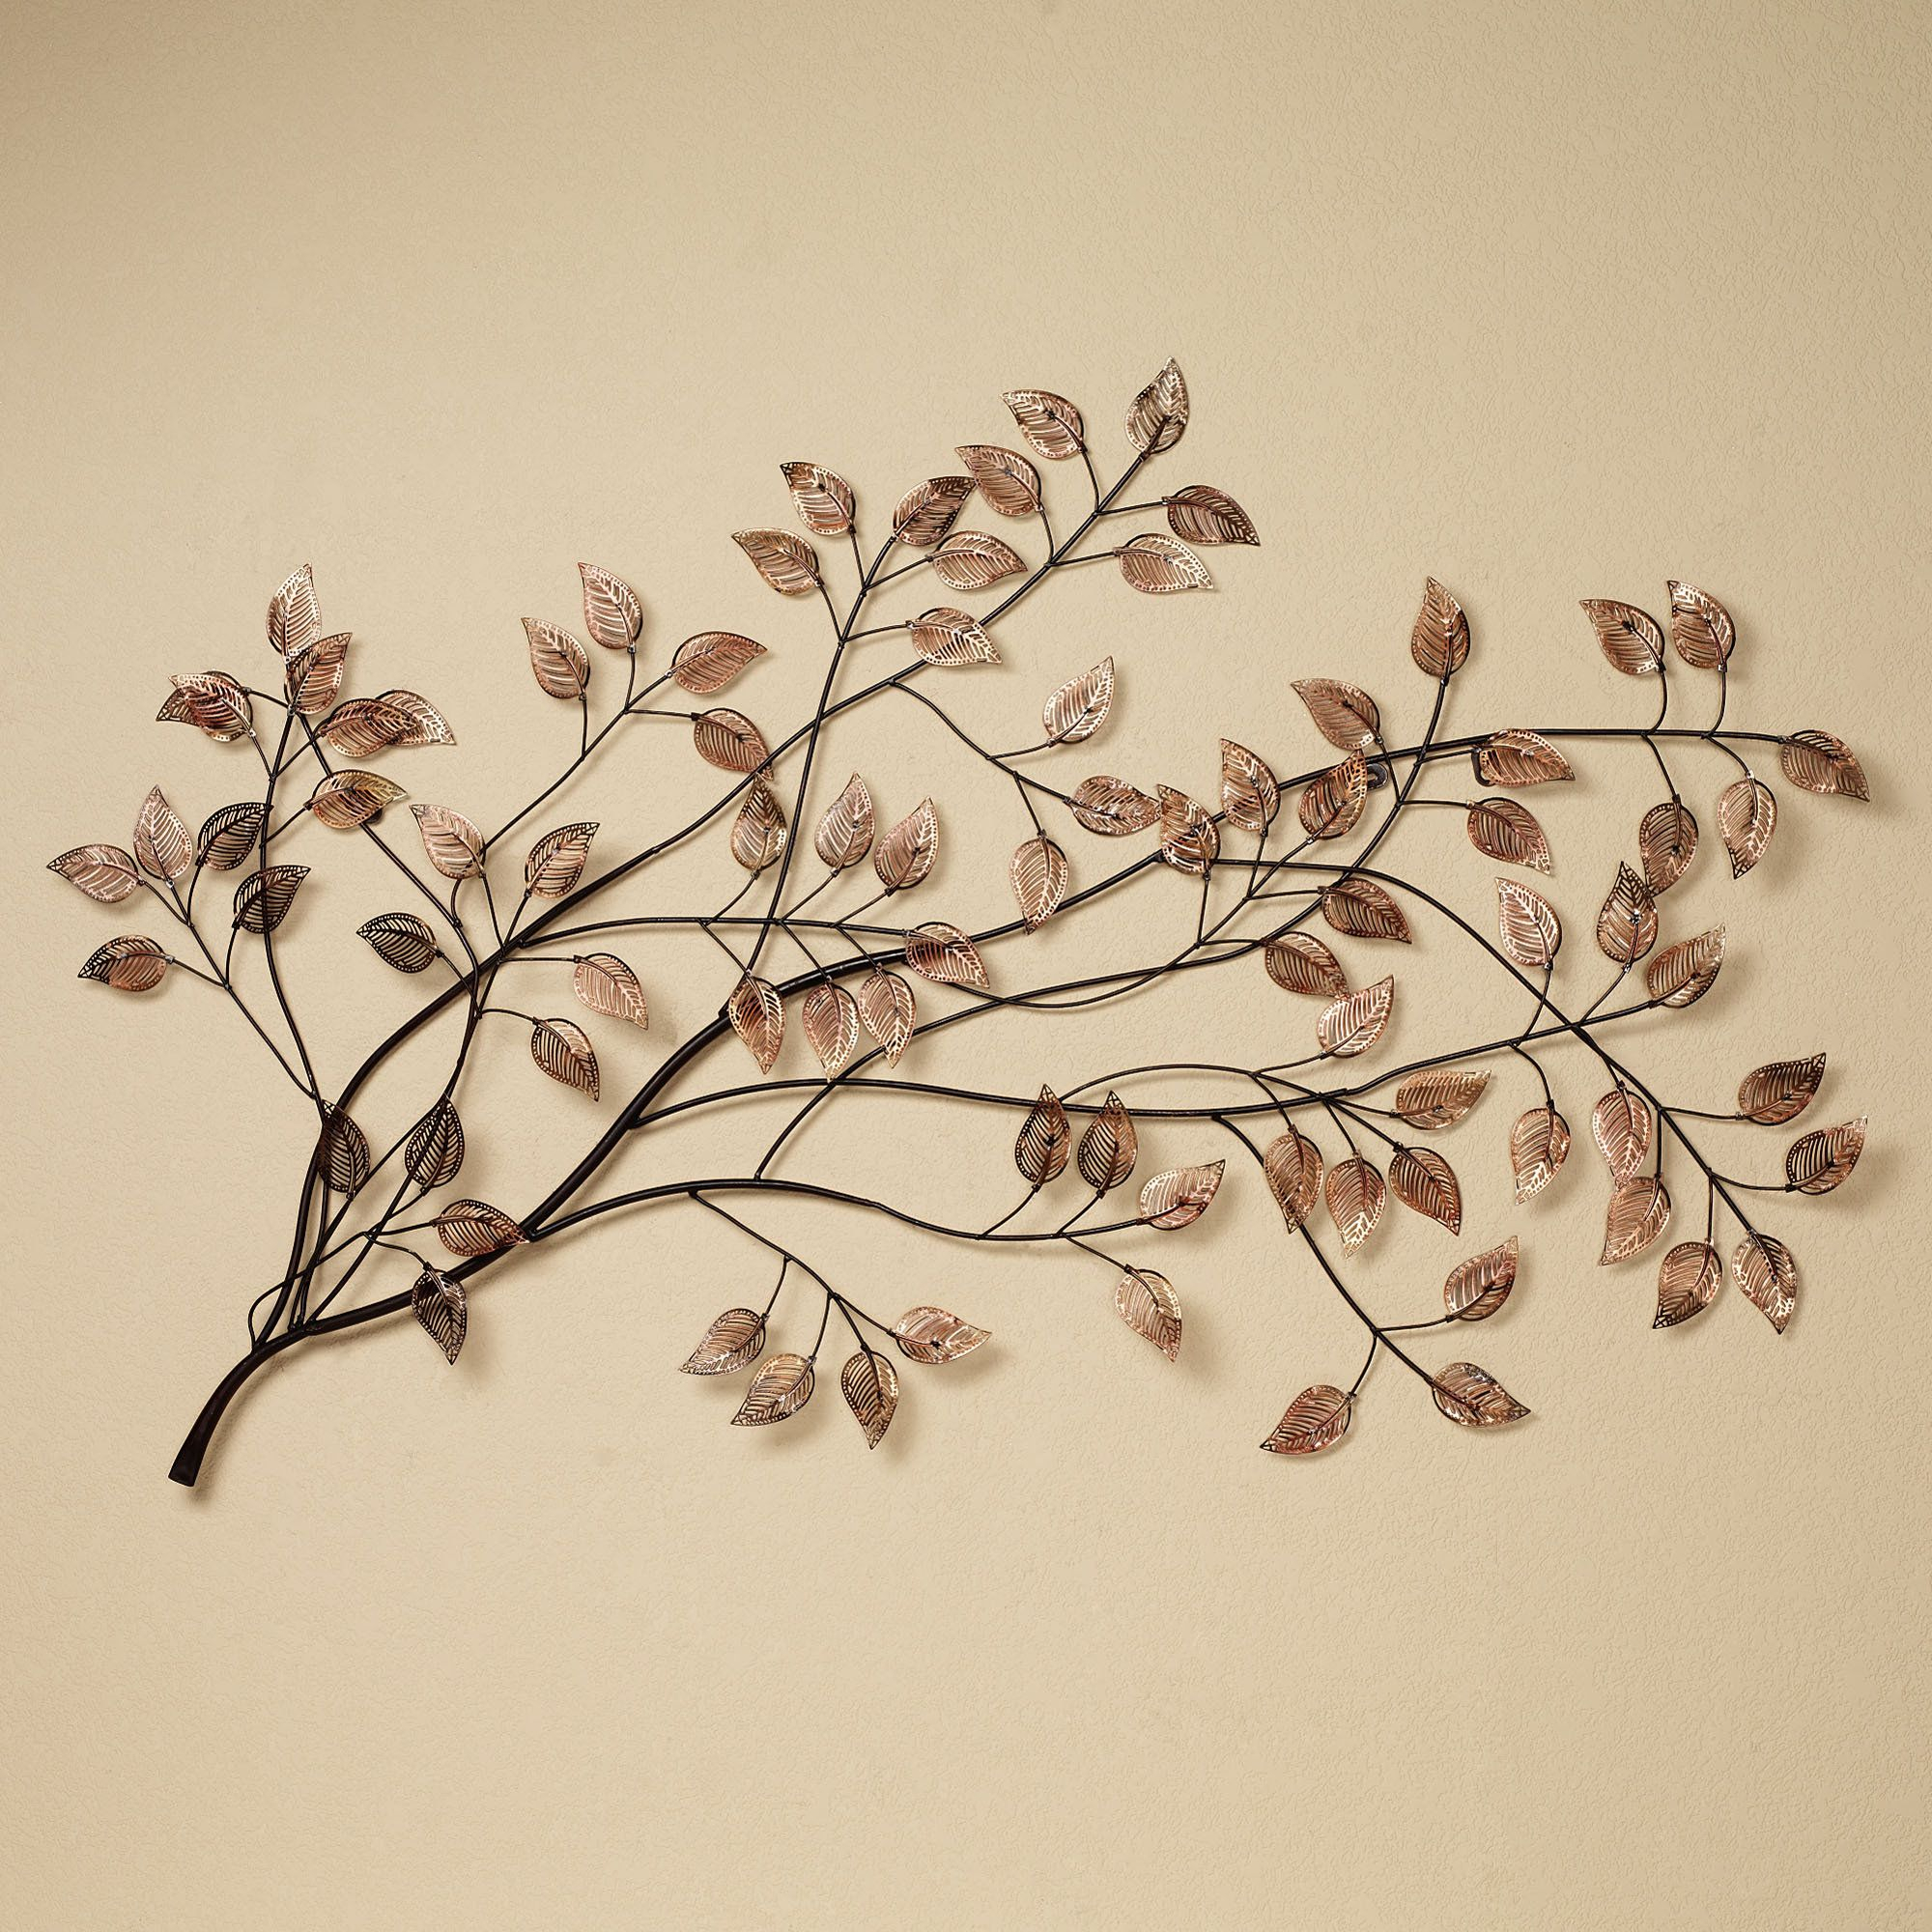 Branches At Sunrise Leaf Metal Wall Sculpture | Walls In Tree Shell Leaves Sculpture Wall Decor (View 17 of 30)